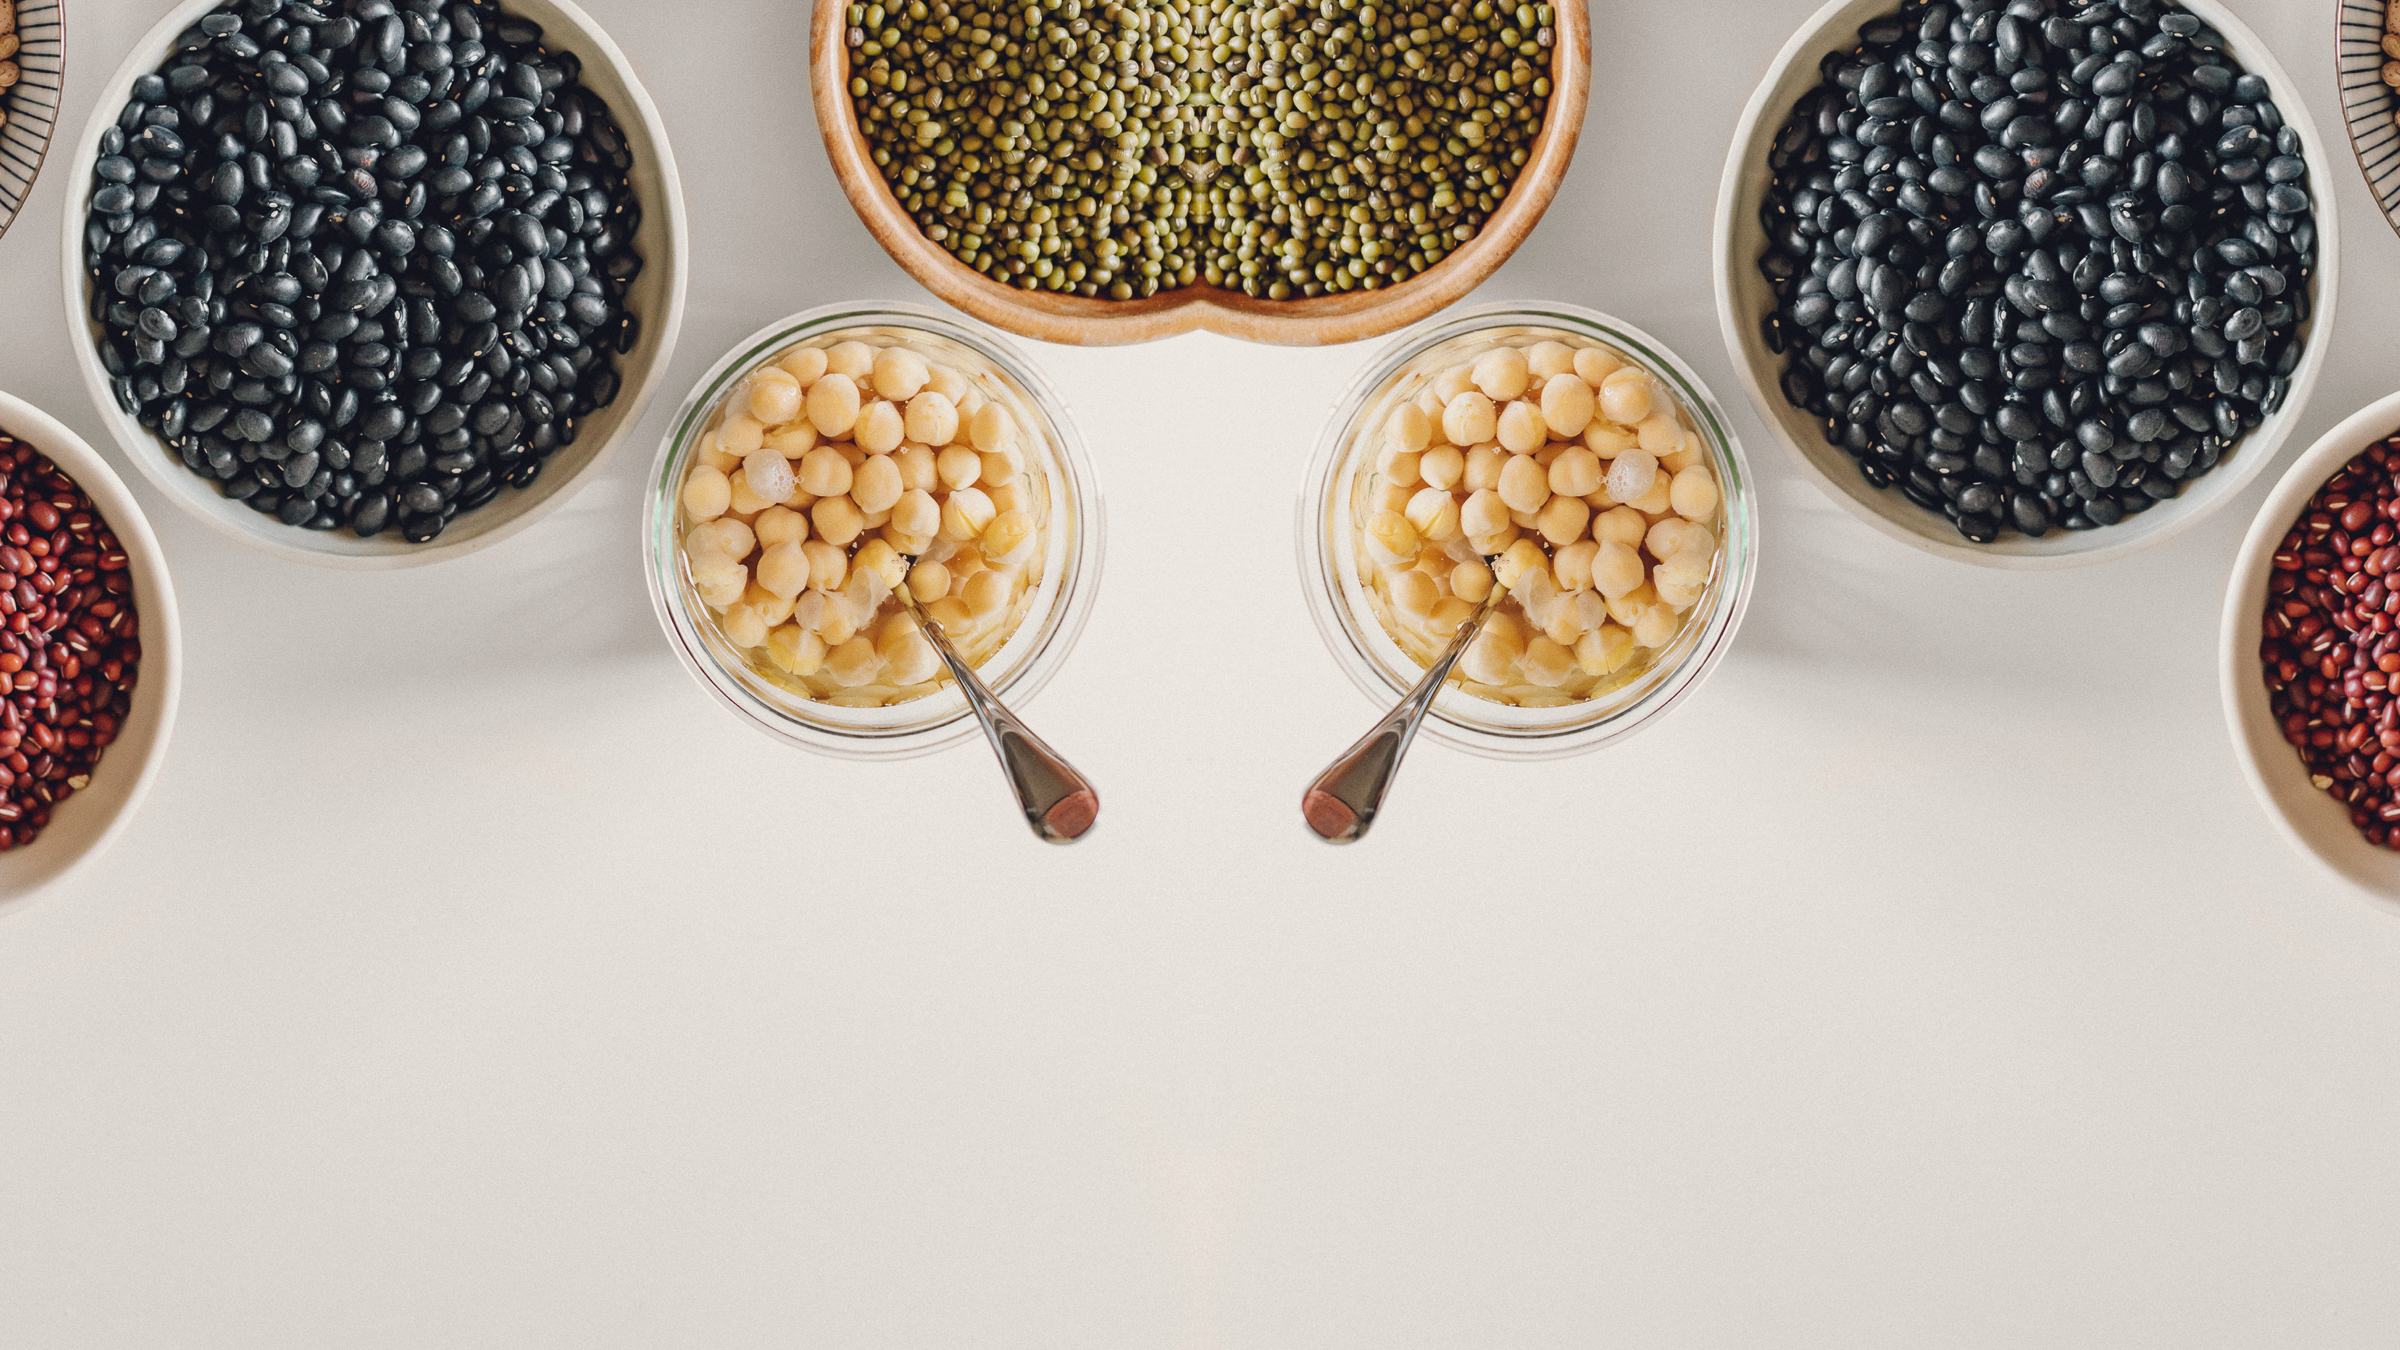 The Transformational Healing Power of Beans